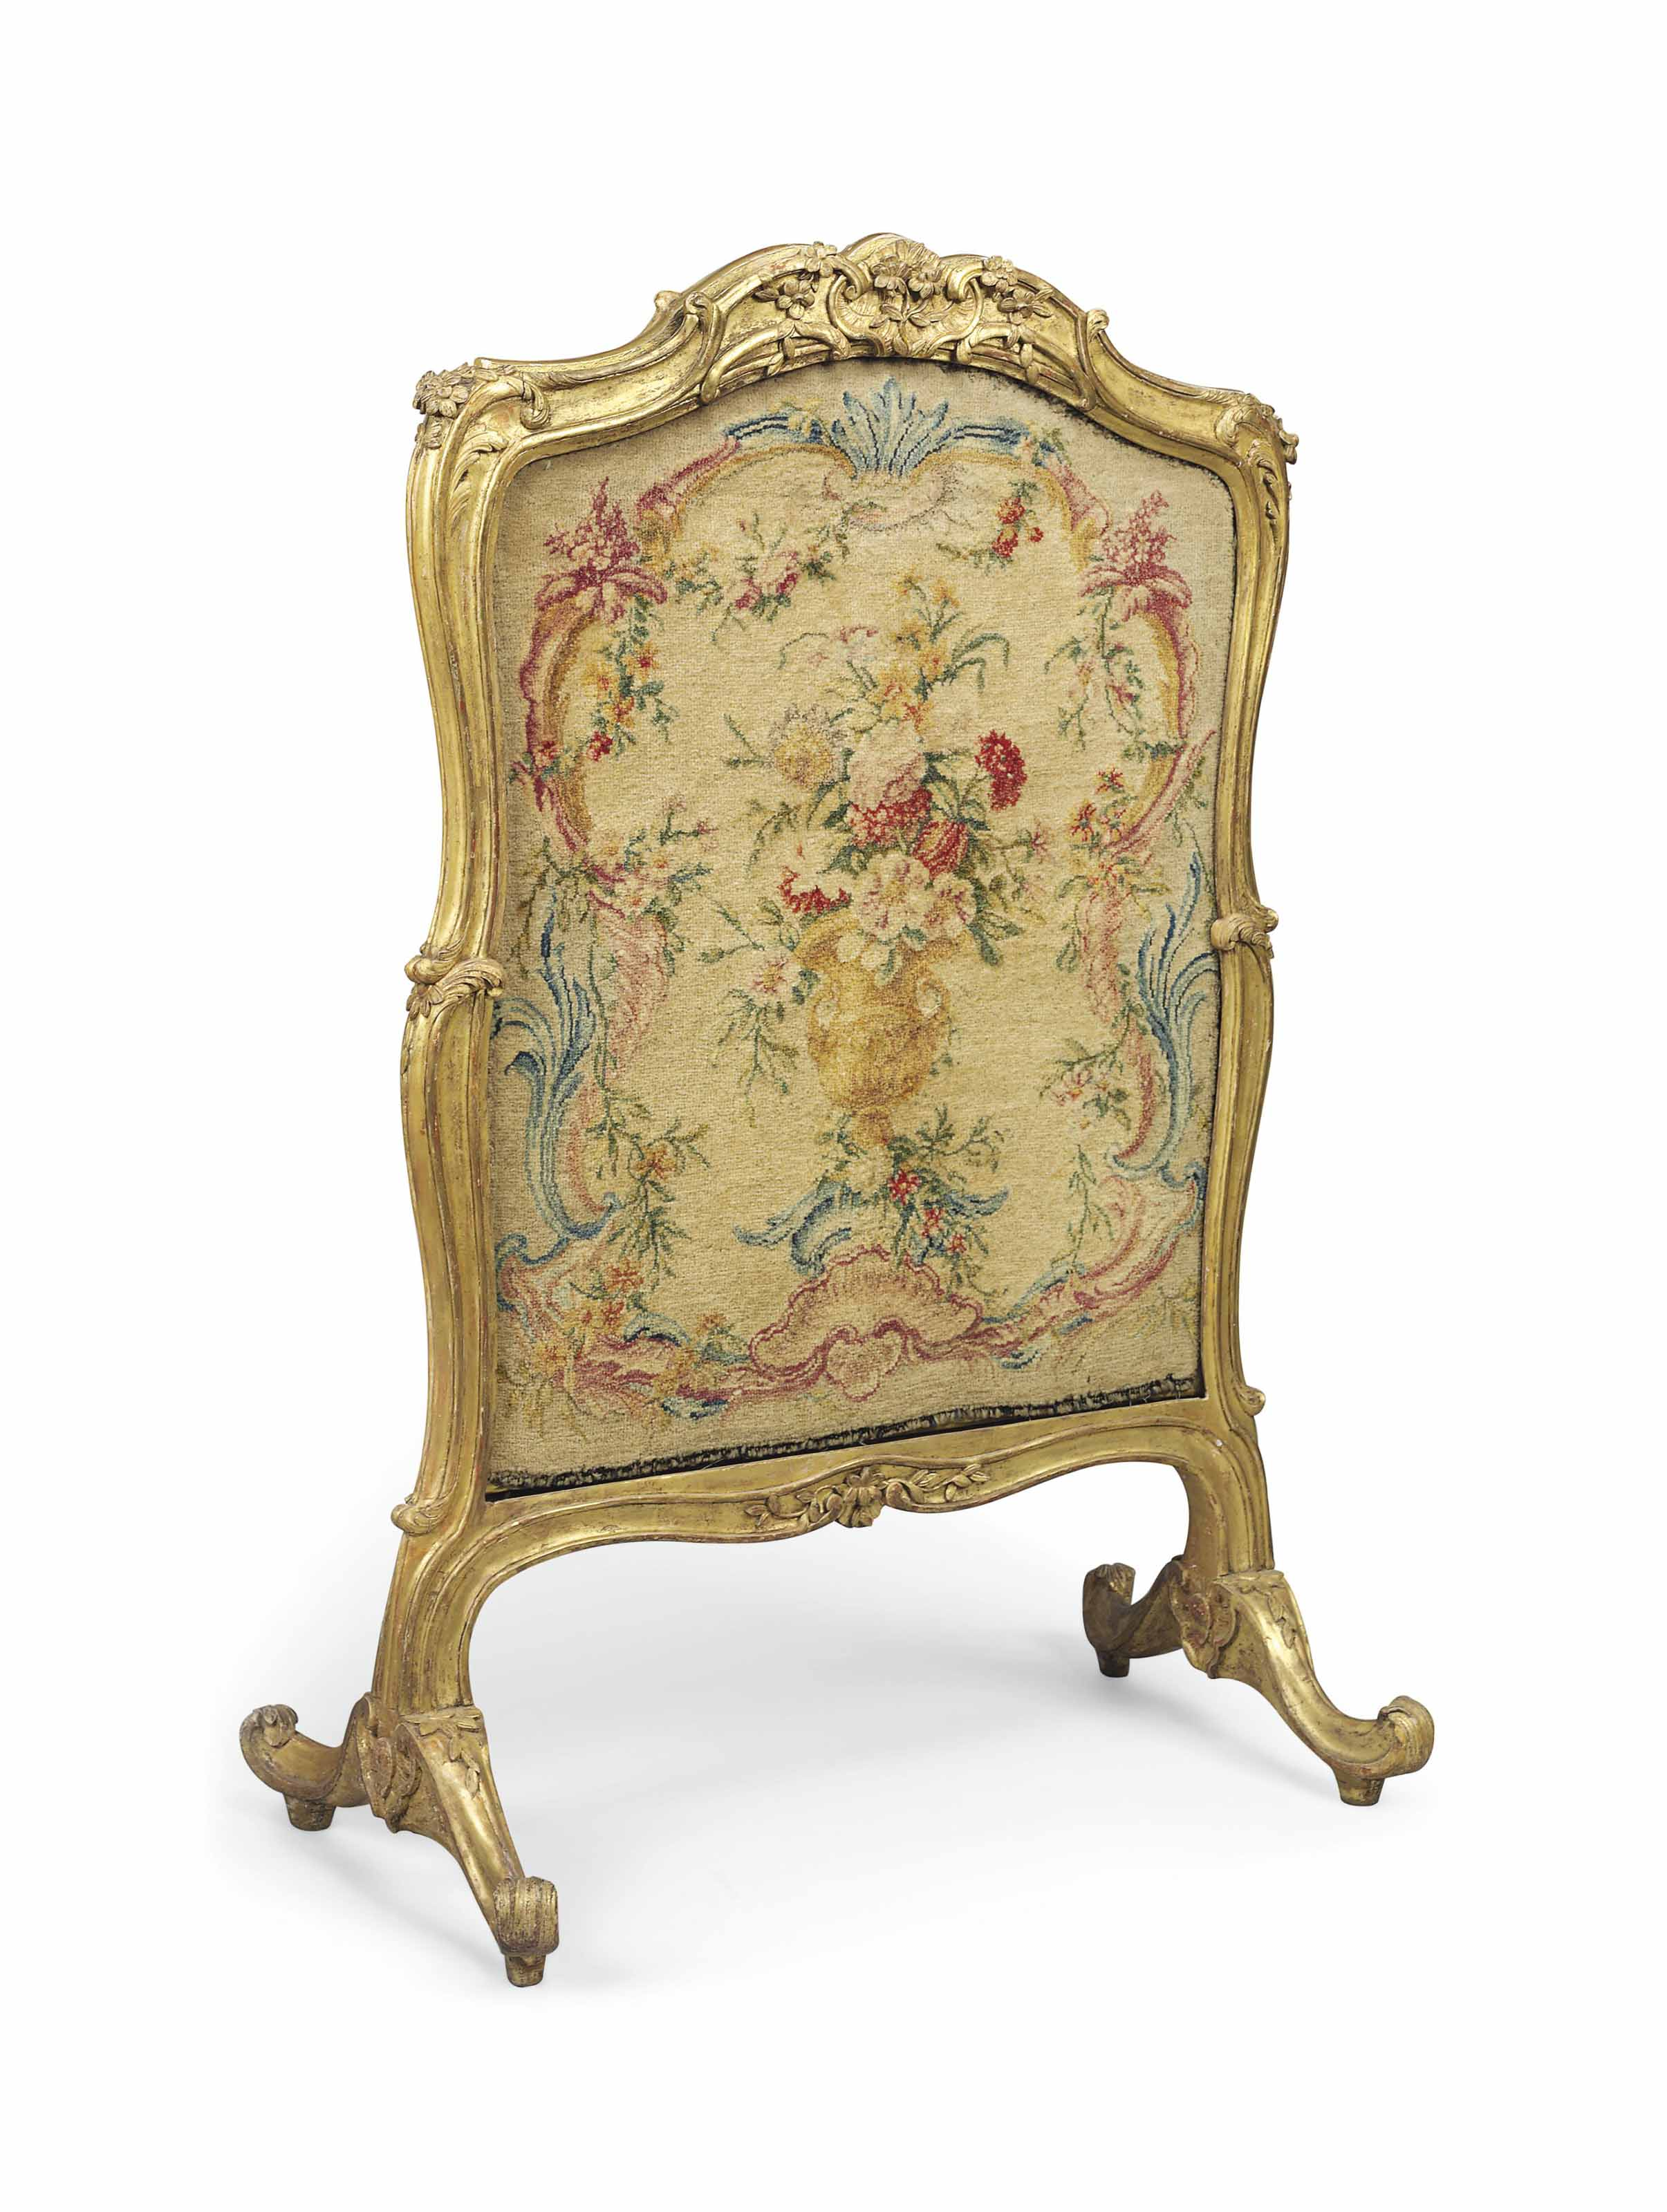 A LOUIS XV GILTWOOD FIRESCREEN INSET WITH A SAVONNERIE PANEL